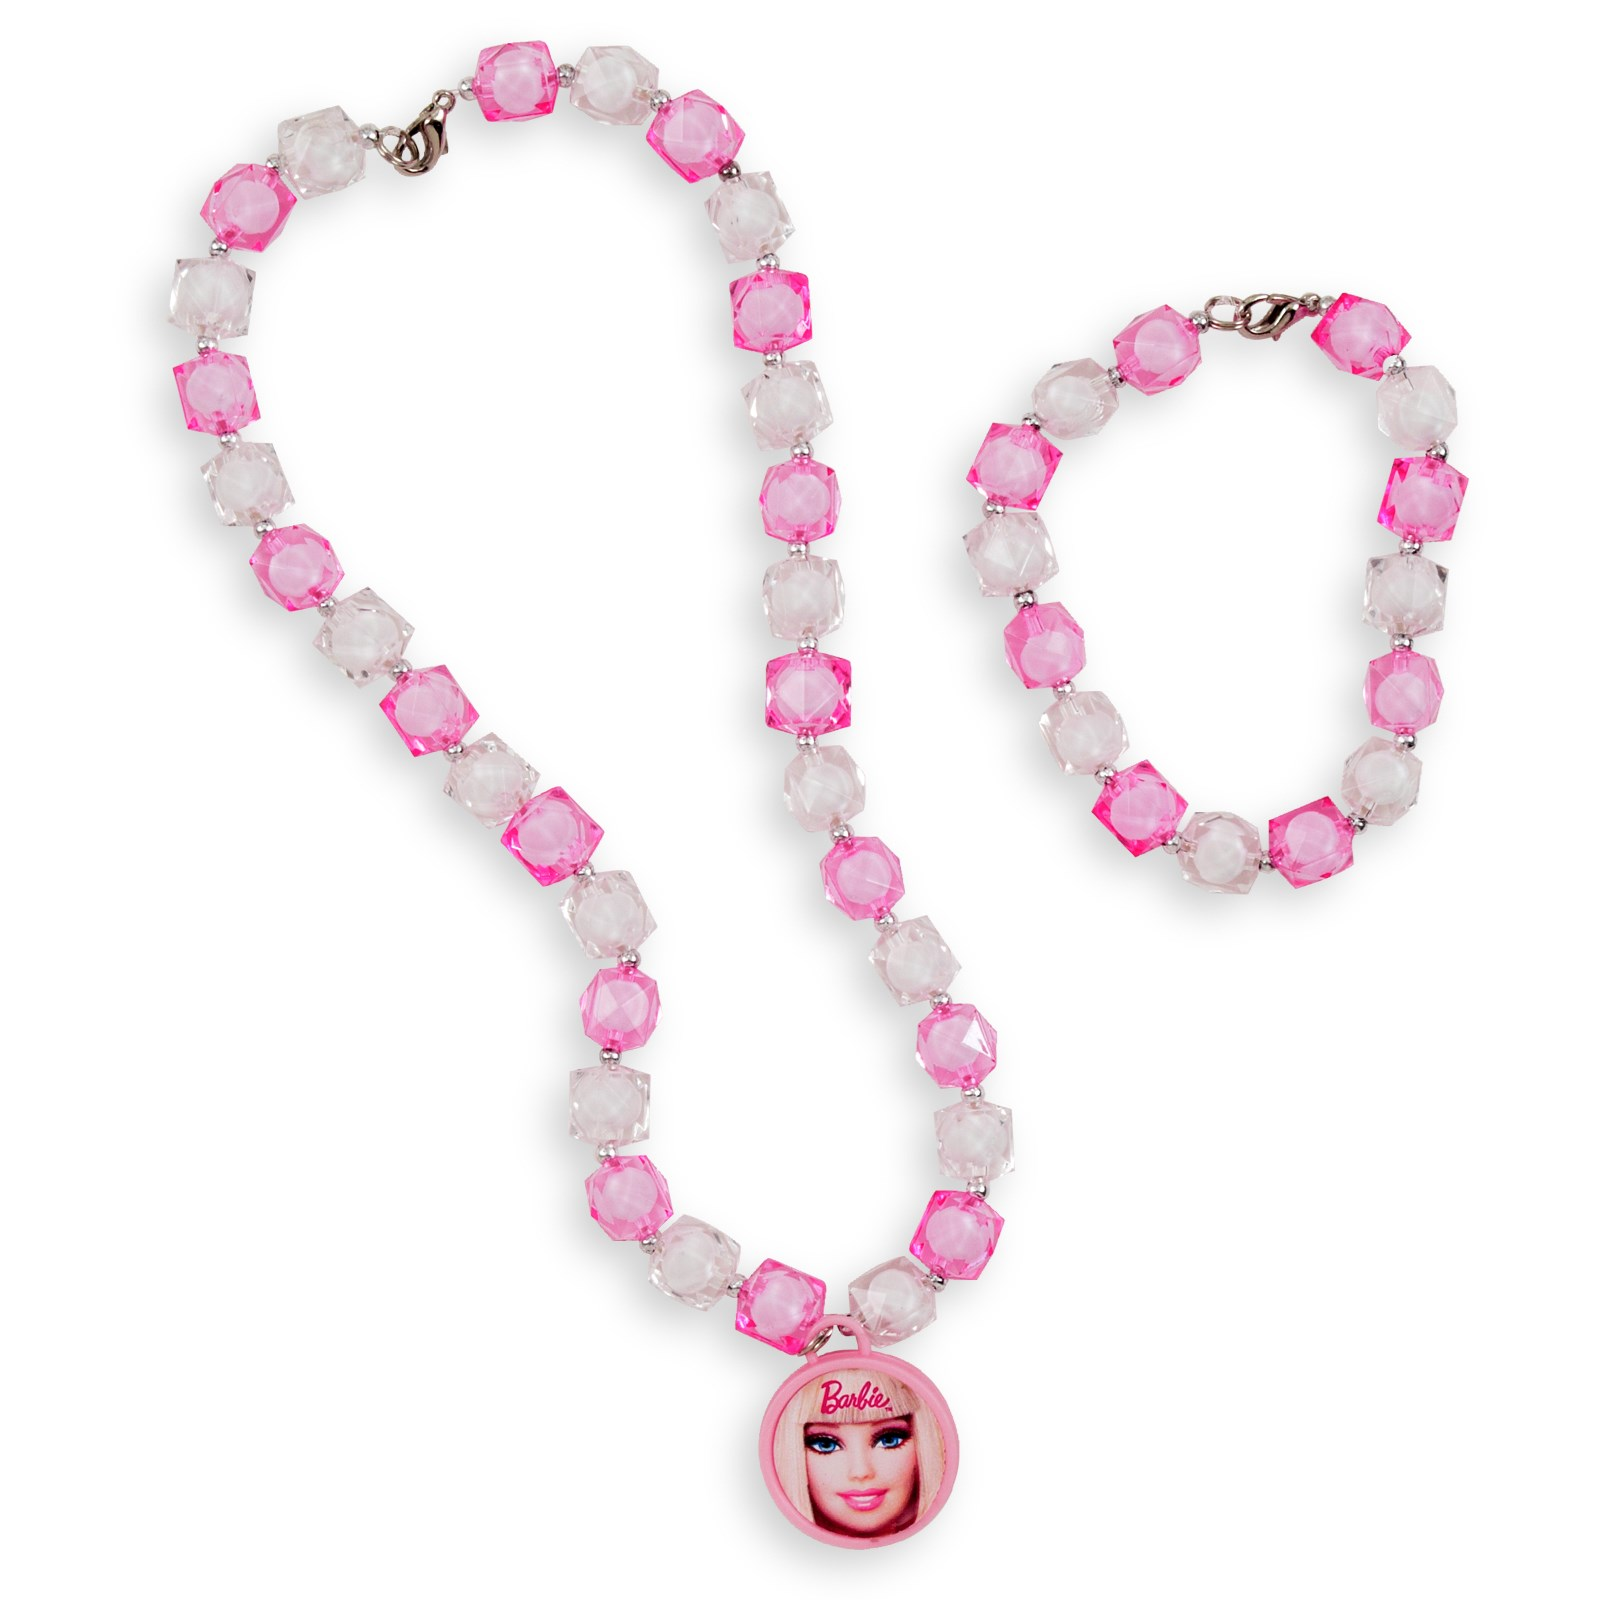 Barbie All Doll'd Up Bracelet Necklace Set